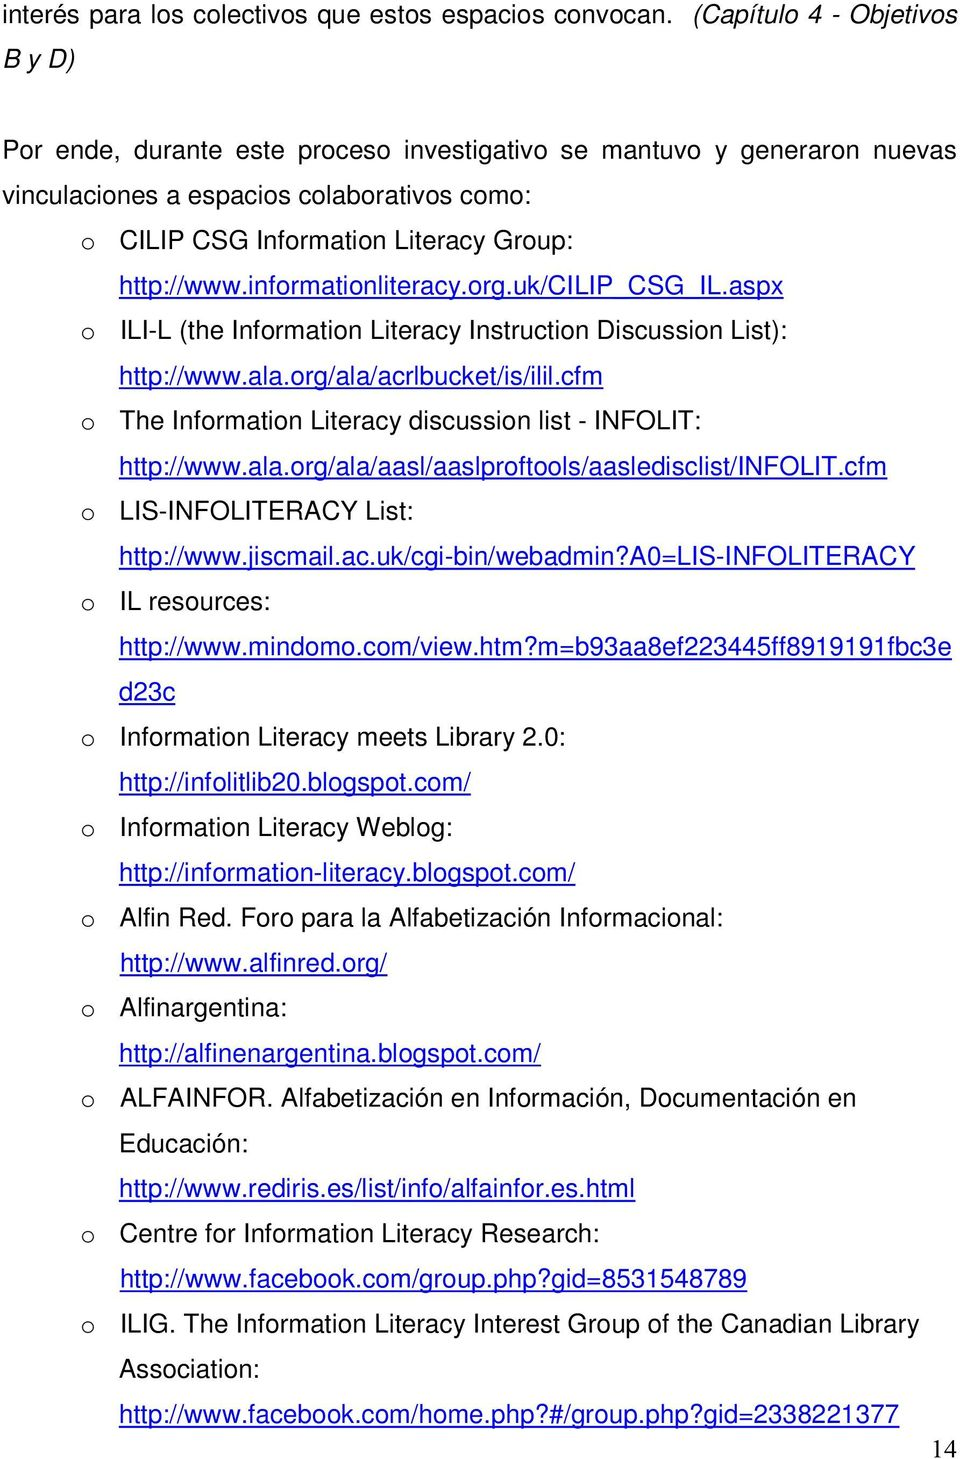 http://www.informationliteracy.org.uk/cilip_csg_il.aspx o ILI-L (the Information Literacy Instruction Discussion List): http://www.ala.org/ala/acrlbucket/is/ilil.